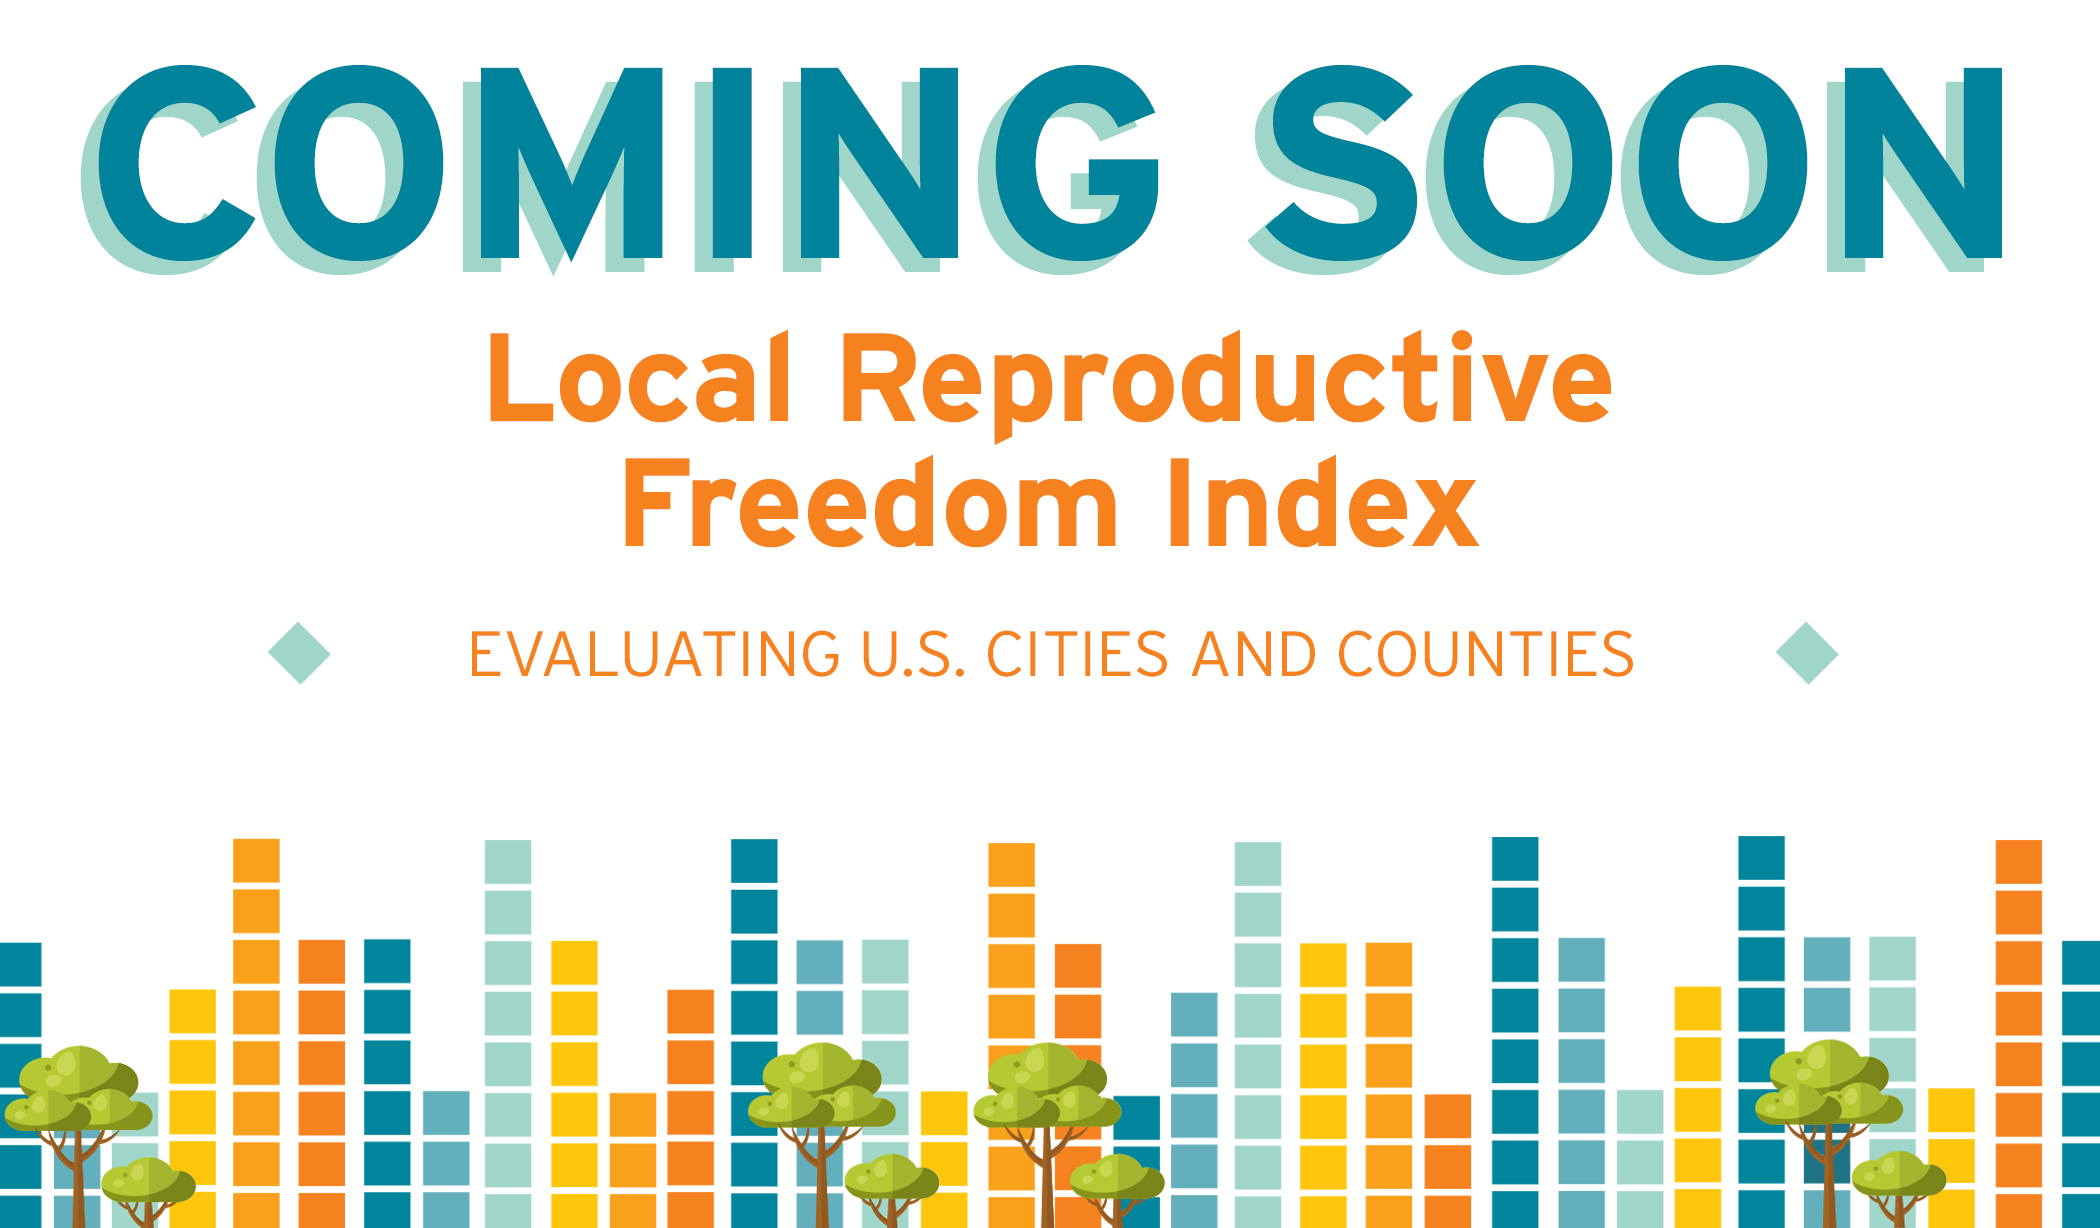 Coming Soon: Local Reproductive Freedom Index